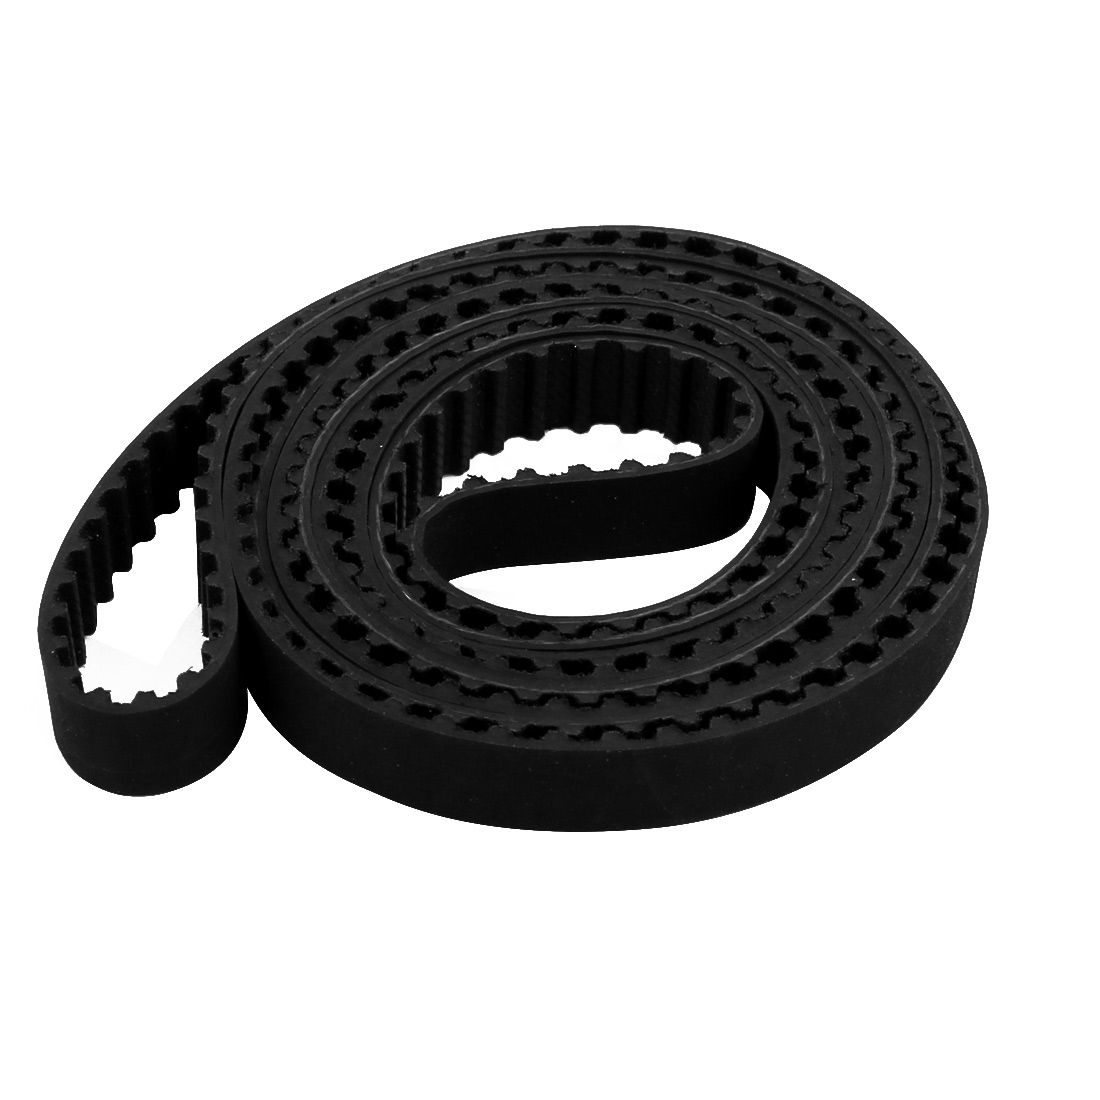 670XL 335 Teeth 10mm Width 5.08mm Pitch Stepper Motor Rubber Timing Belt